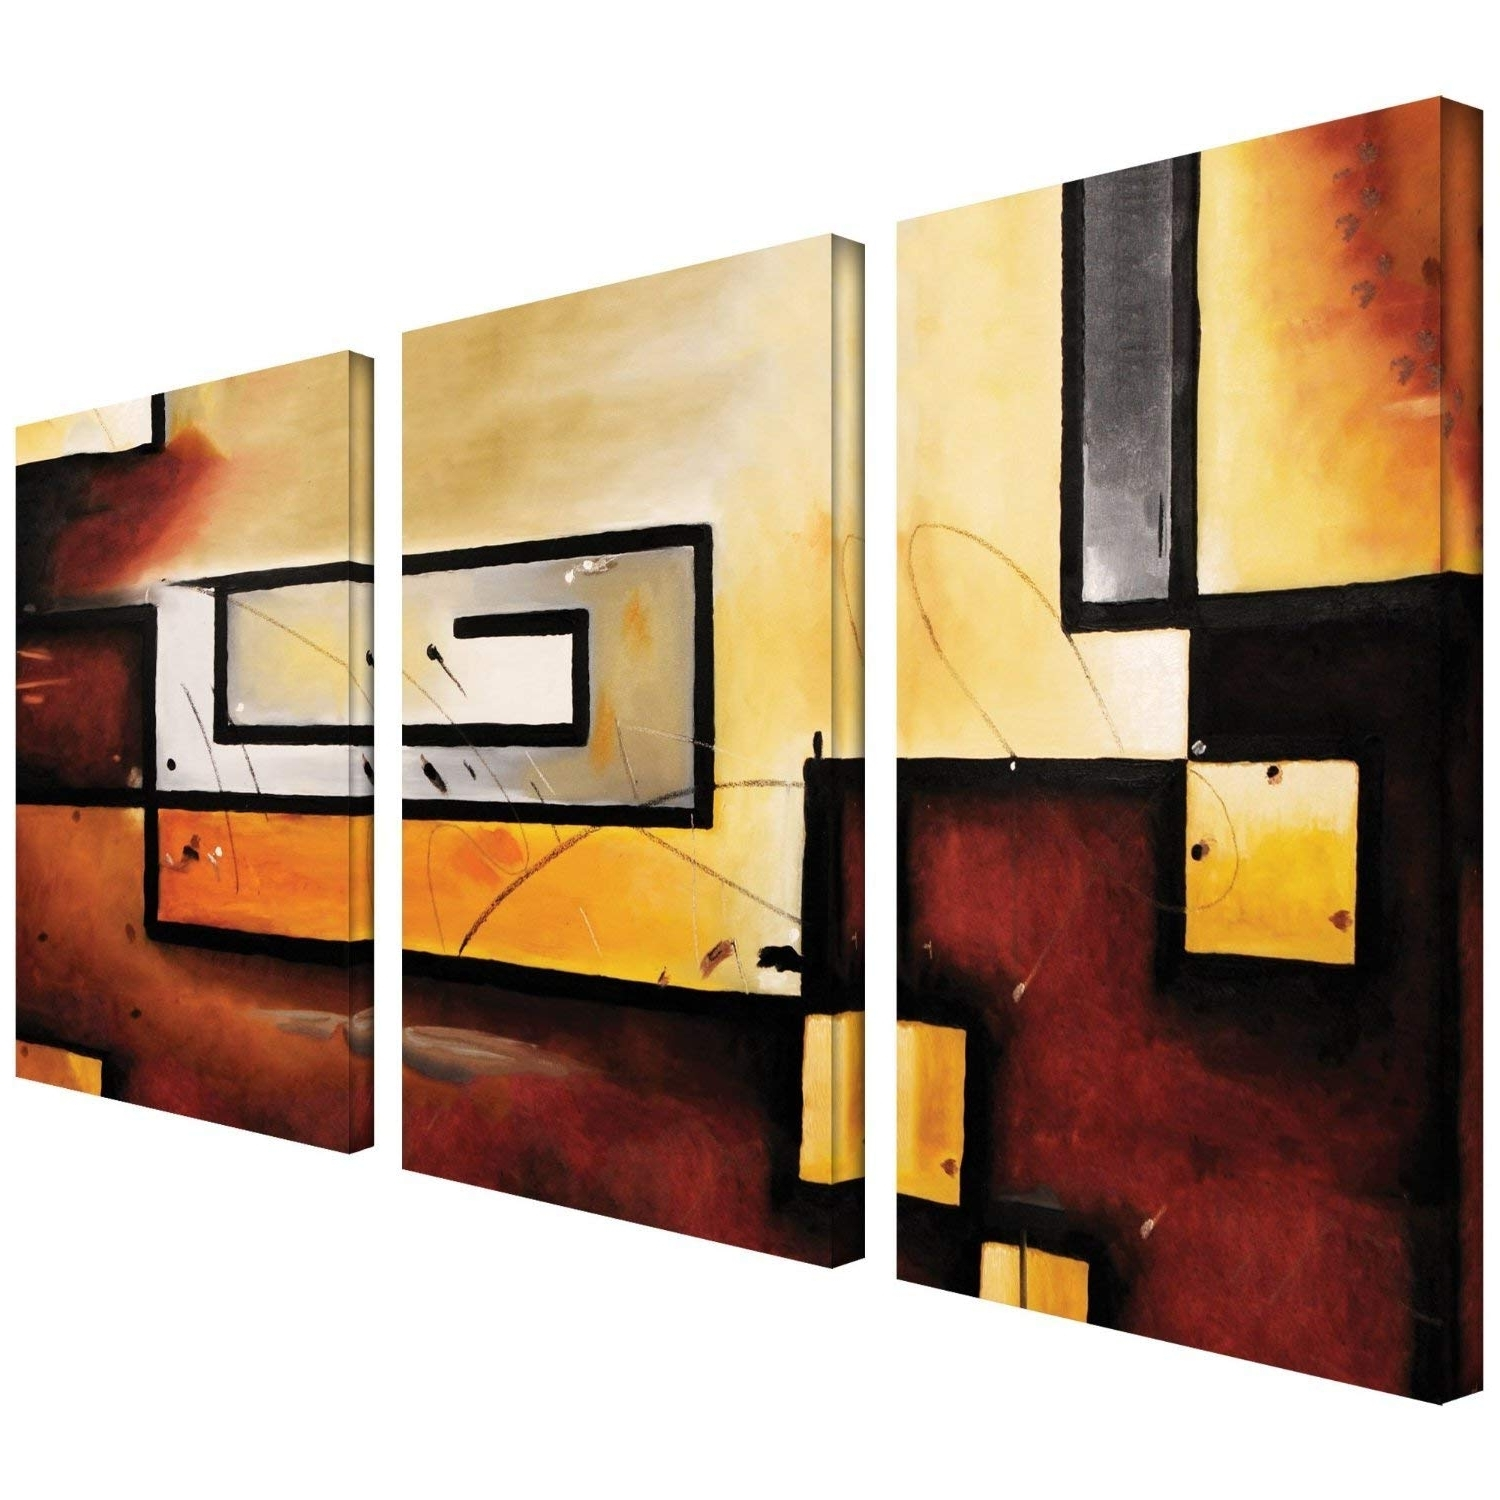 3 Piece Canvas Wall Art Inside 2018 Amazon: Art Wall 3 Piece Abstract Modern Gallery Wrapped Canvas (View 4 of 20)